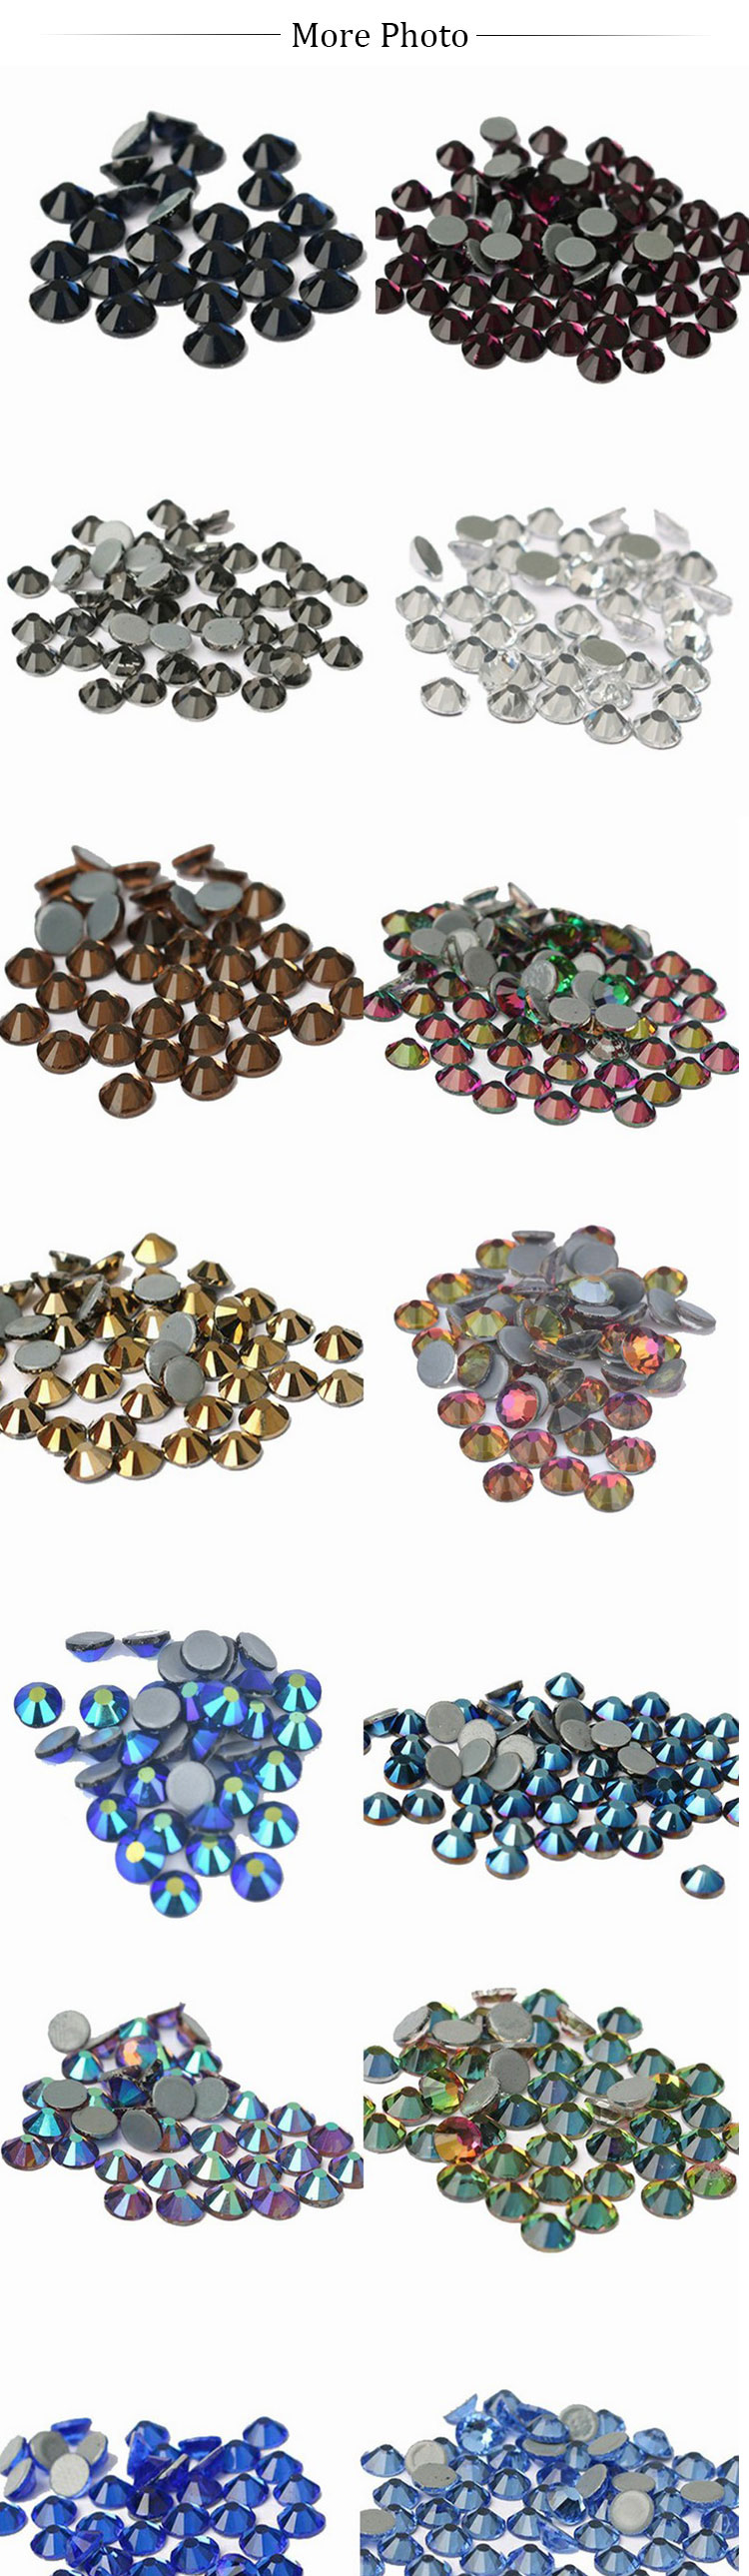 New Glass Crystal Dispersed Hot Drilling Rhinestones For Craft Stitching